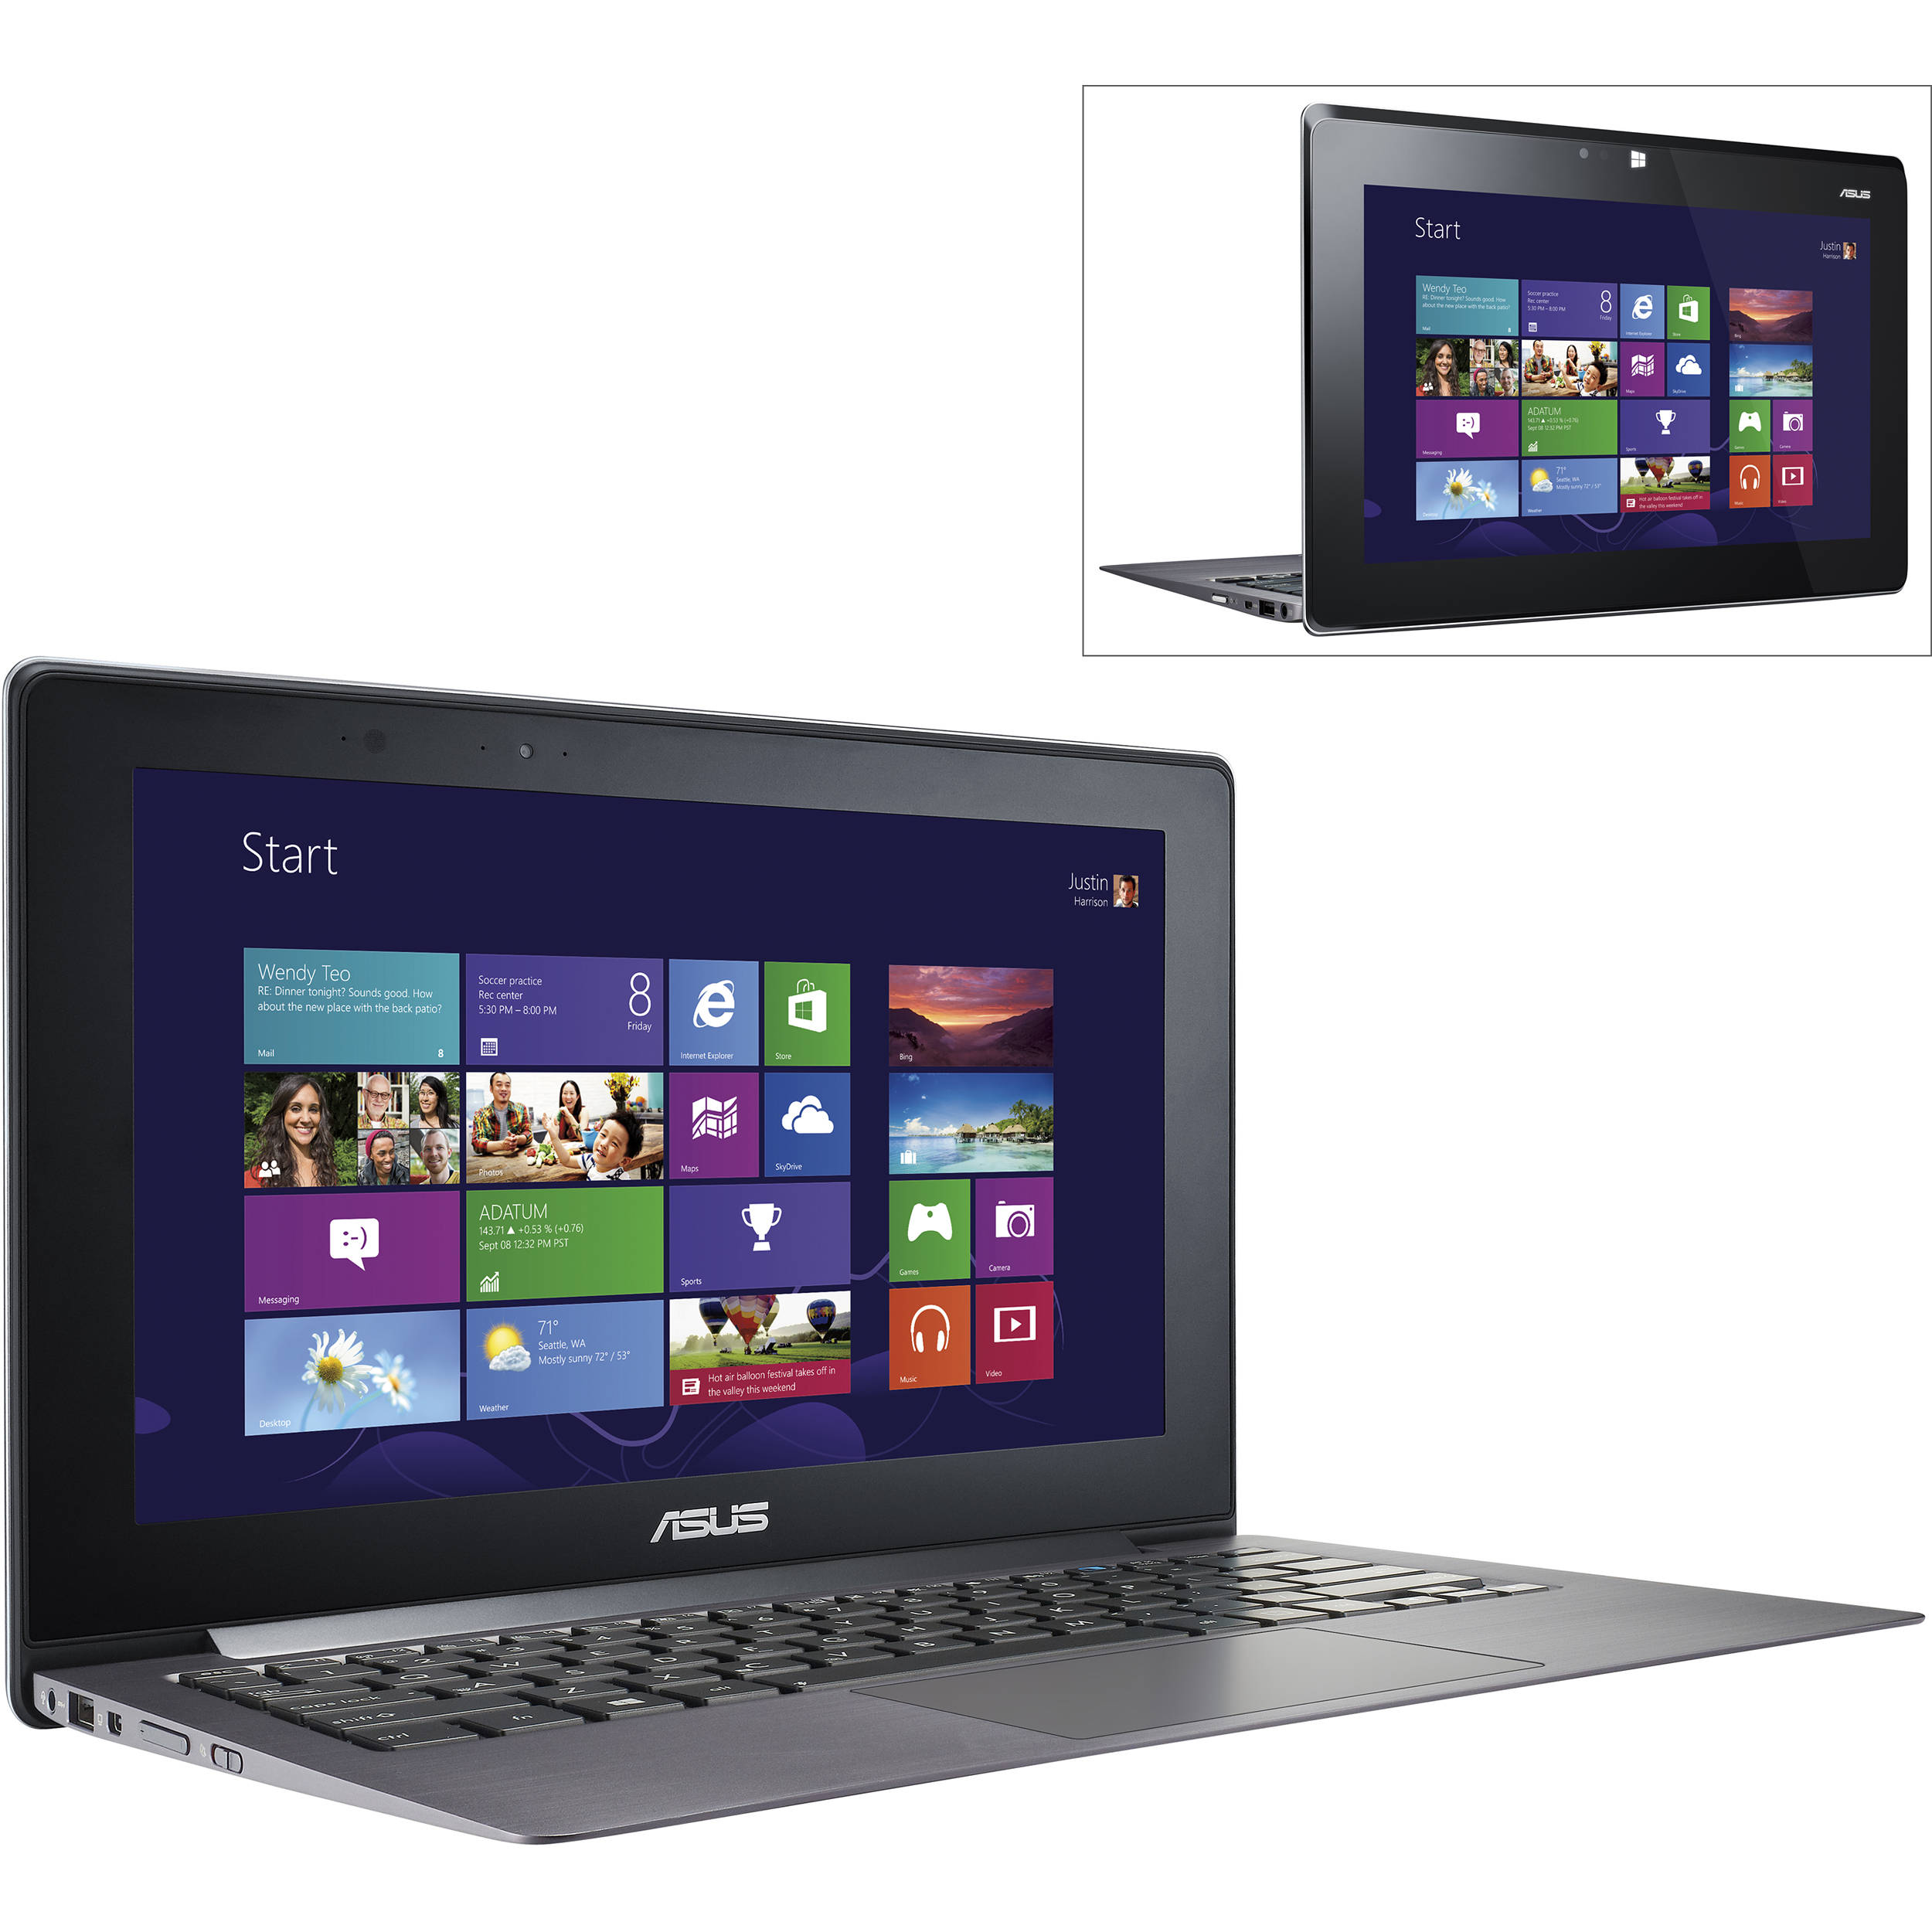 ASUS TAICHI 21 WIRELESS DISPLAY TREIBER WINDOWS 7